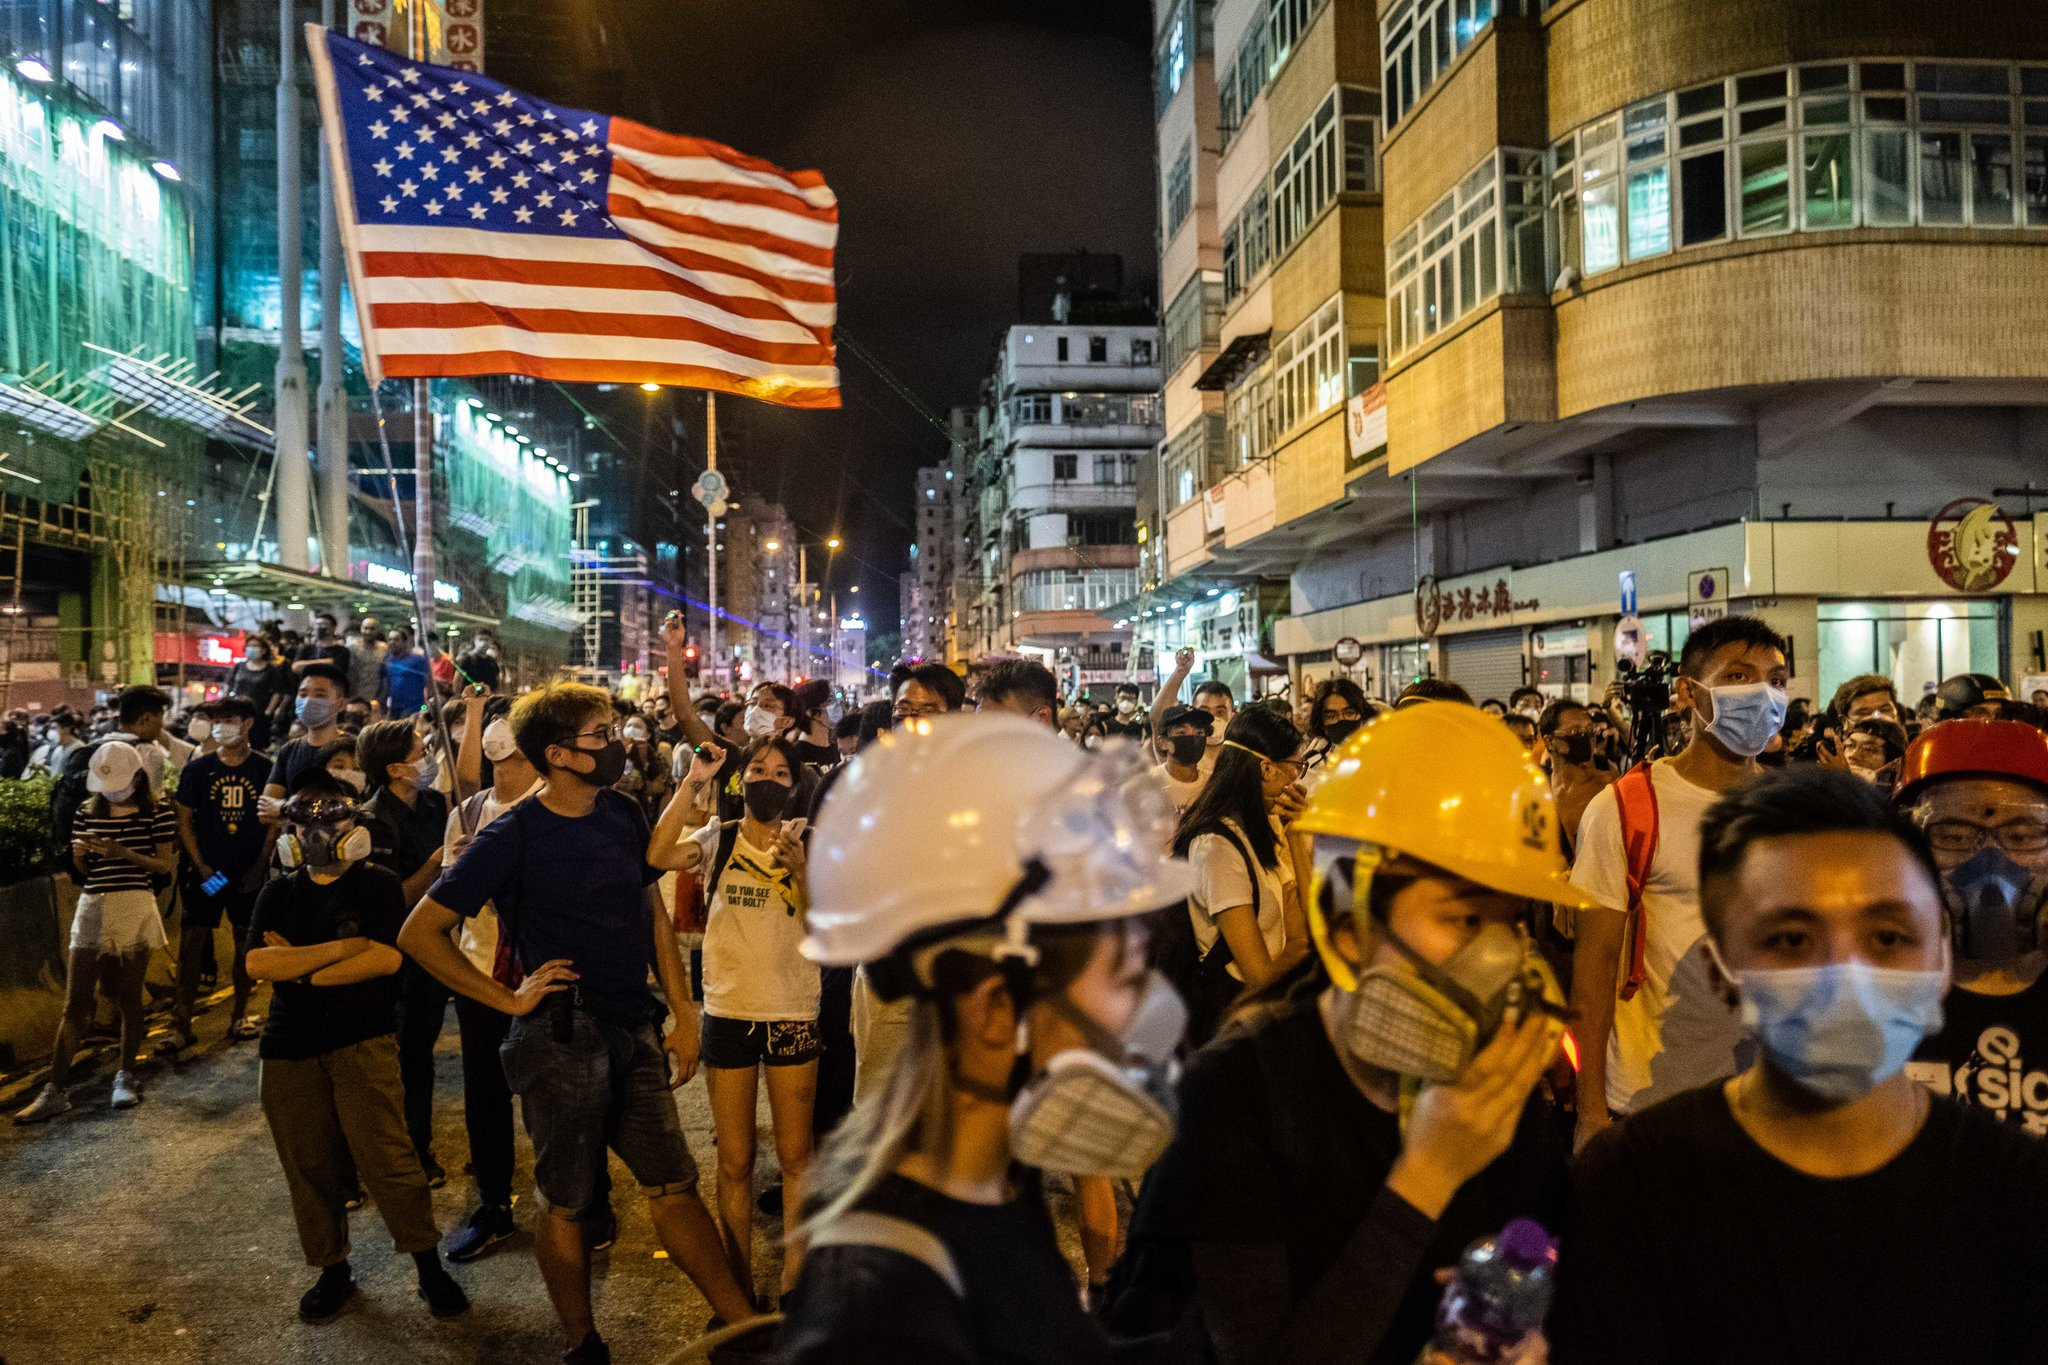 Is the Hong Kong Unrest Worsening the US-China Trade War? 5 Geopolitical Effects You Need to Know